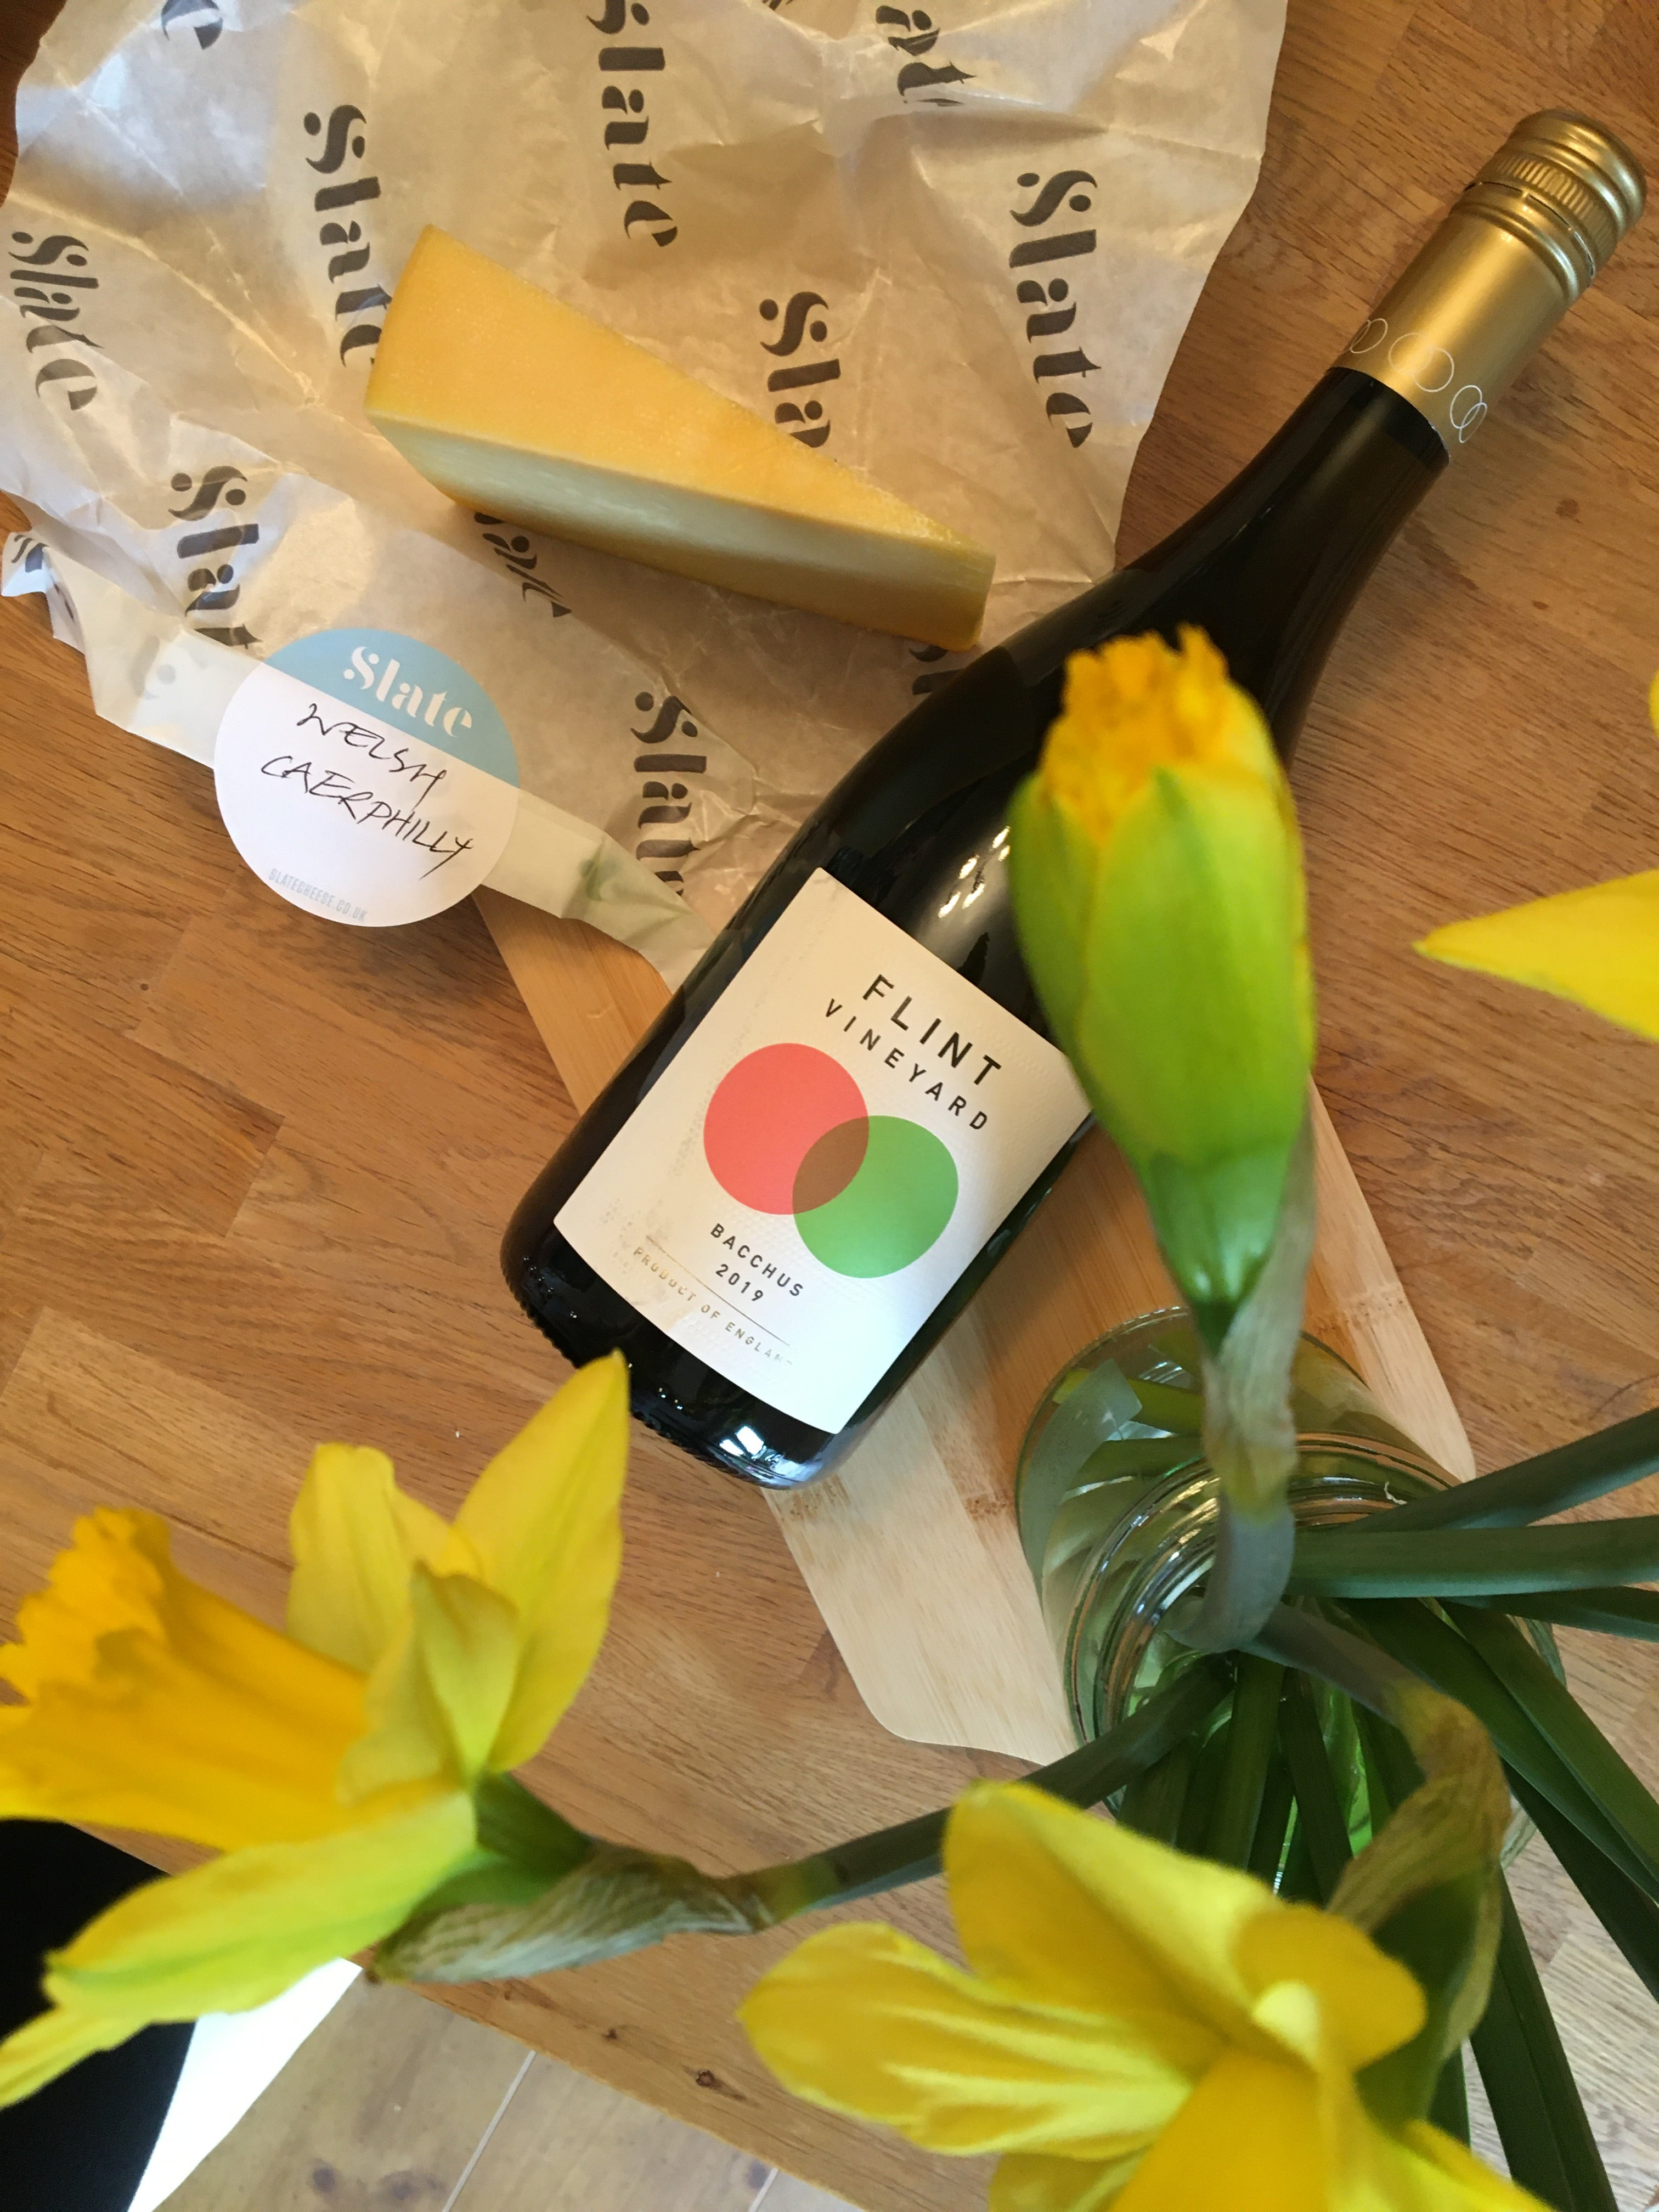 Caws Teifi Traditional Welsh Caerphilly with a bottle of Flint Vineyard's Bacchus